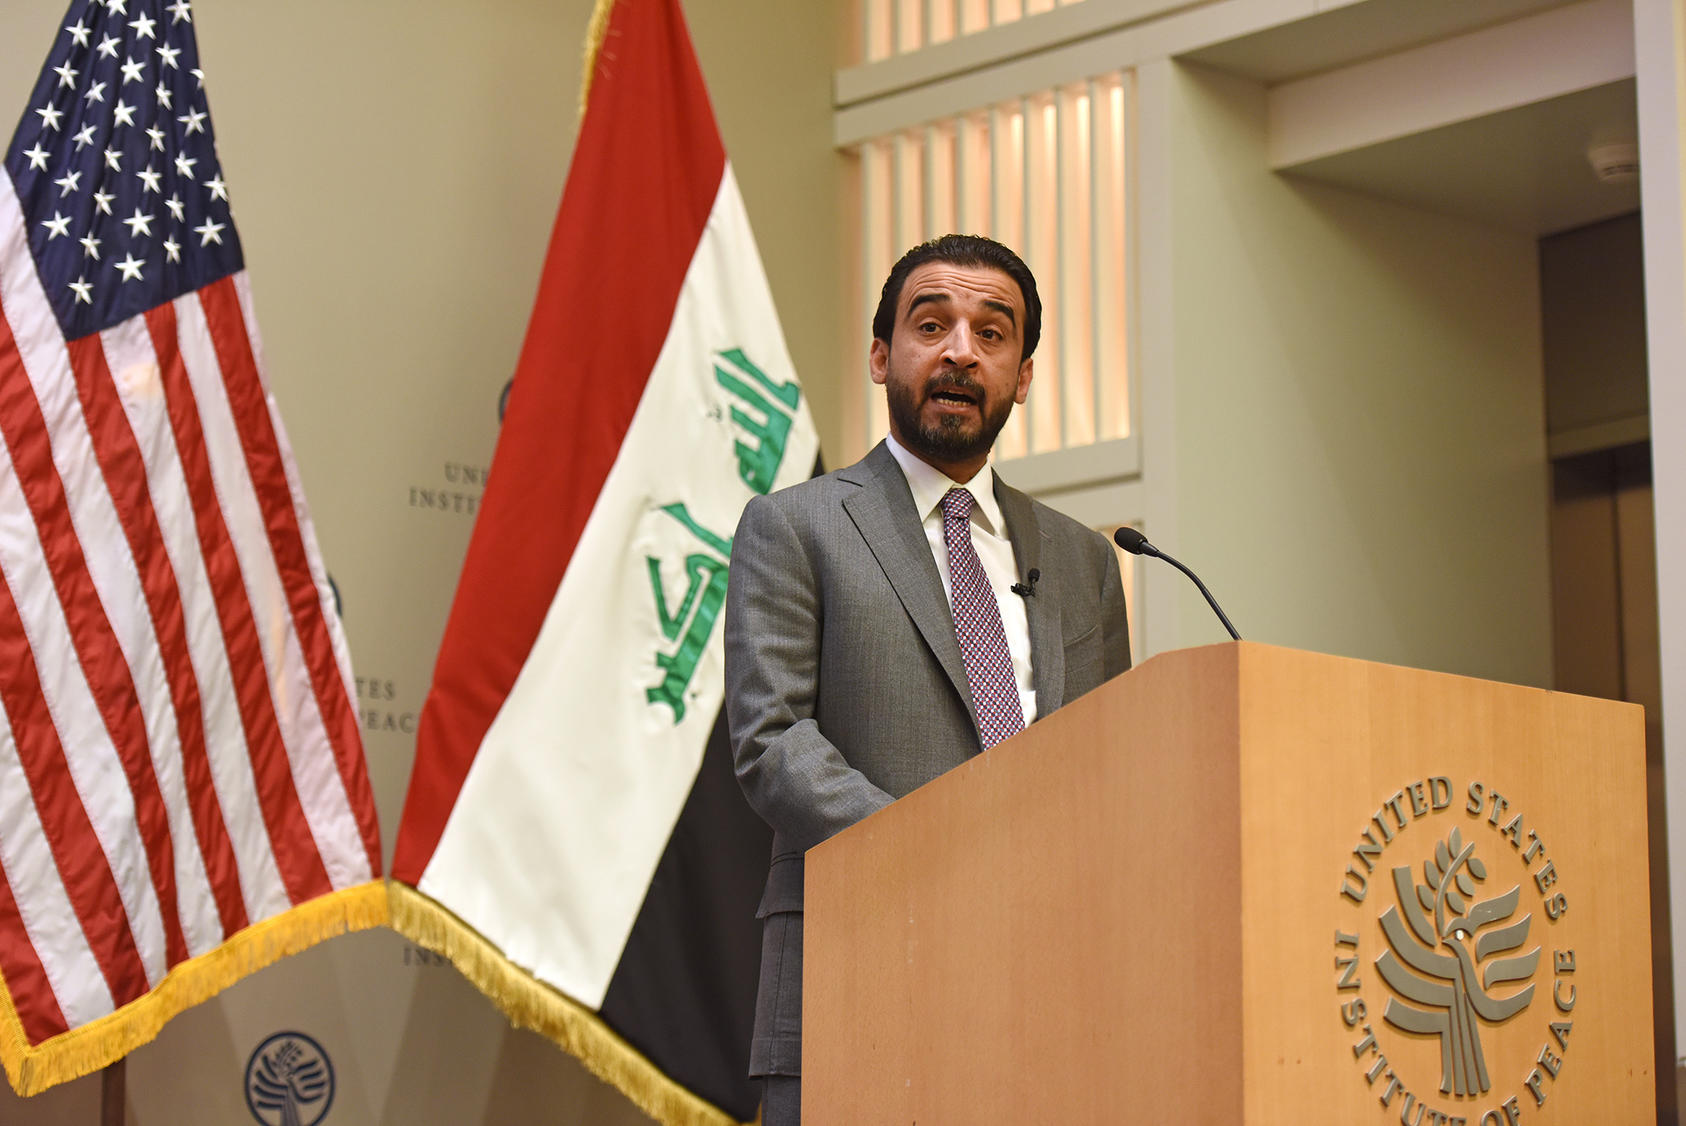 Iraqi Parliament Speaker Mohamed al-Halbousi speaks at a public event at USIP, March 29, 2019.